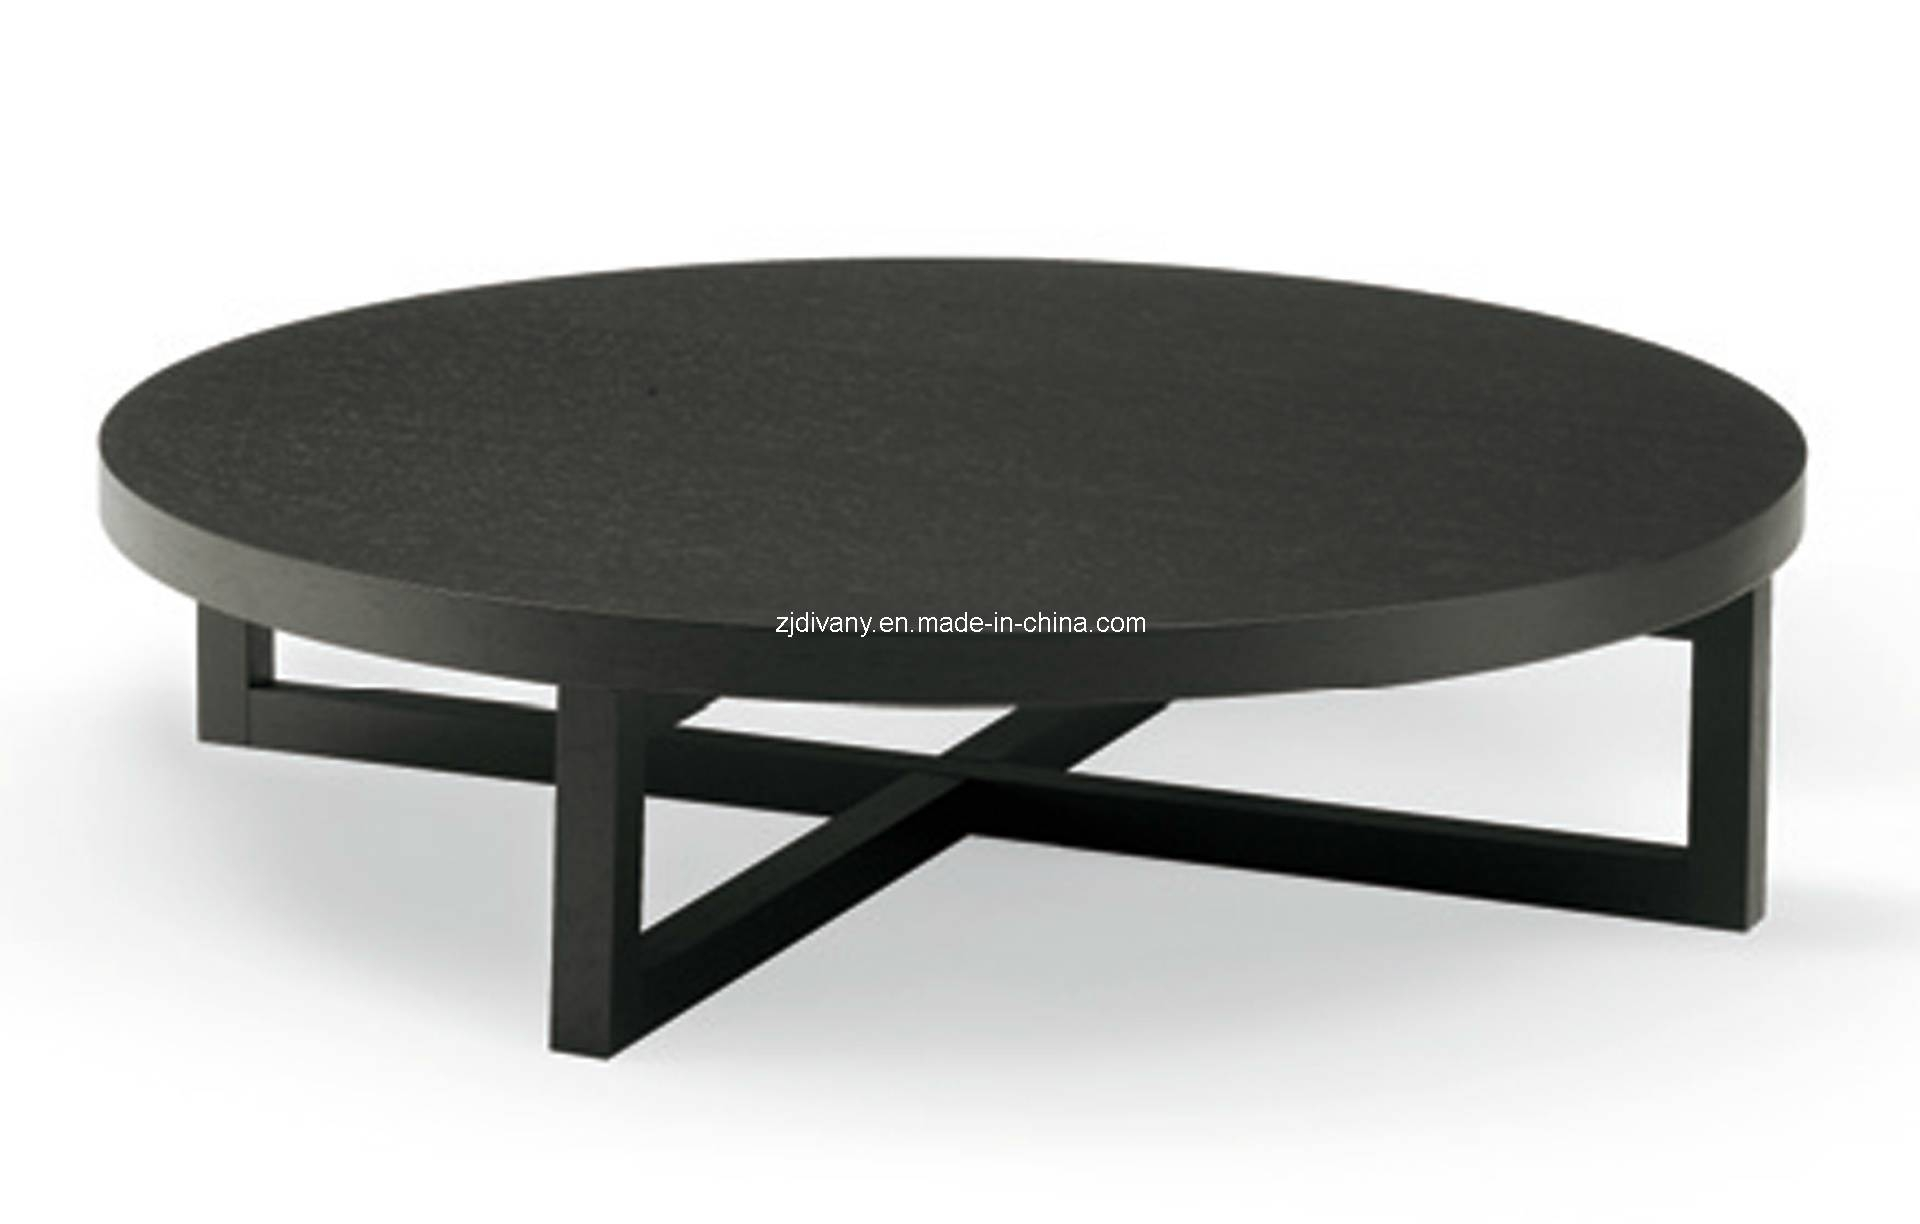 Low Round Coffee Table Uk | Coffee Tables Decoration Pertaining To Large Low Wood Coffee Tables (View 18 of 30)